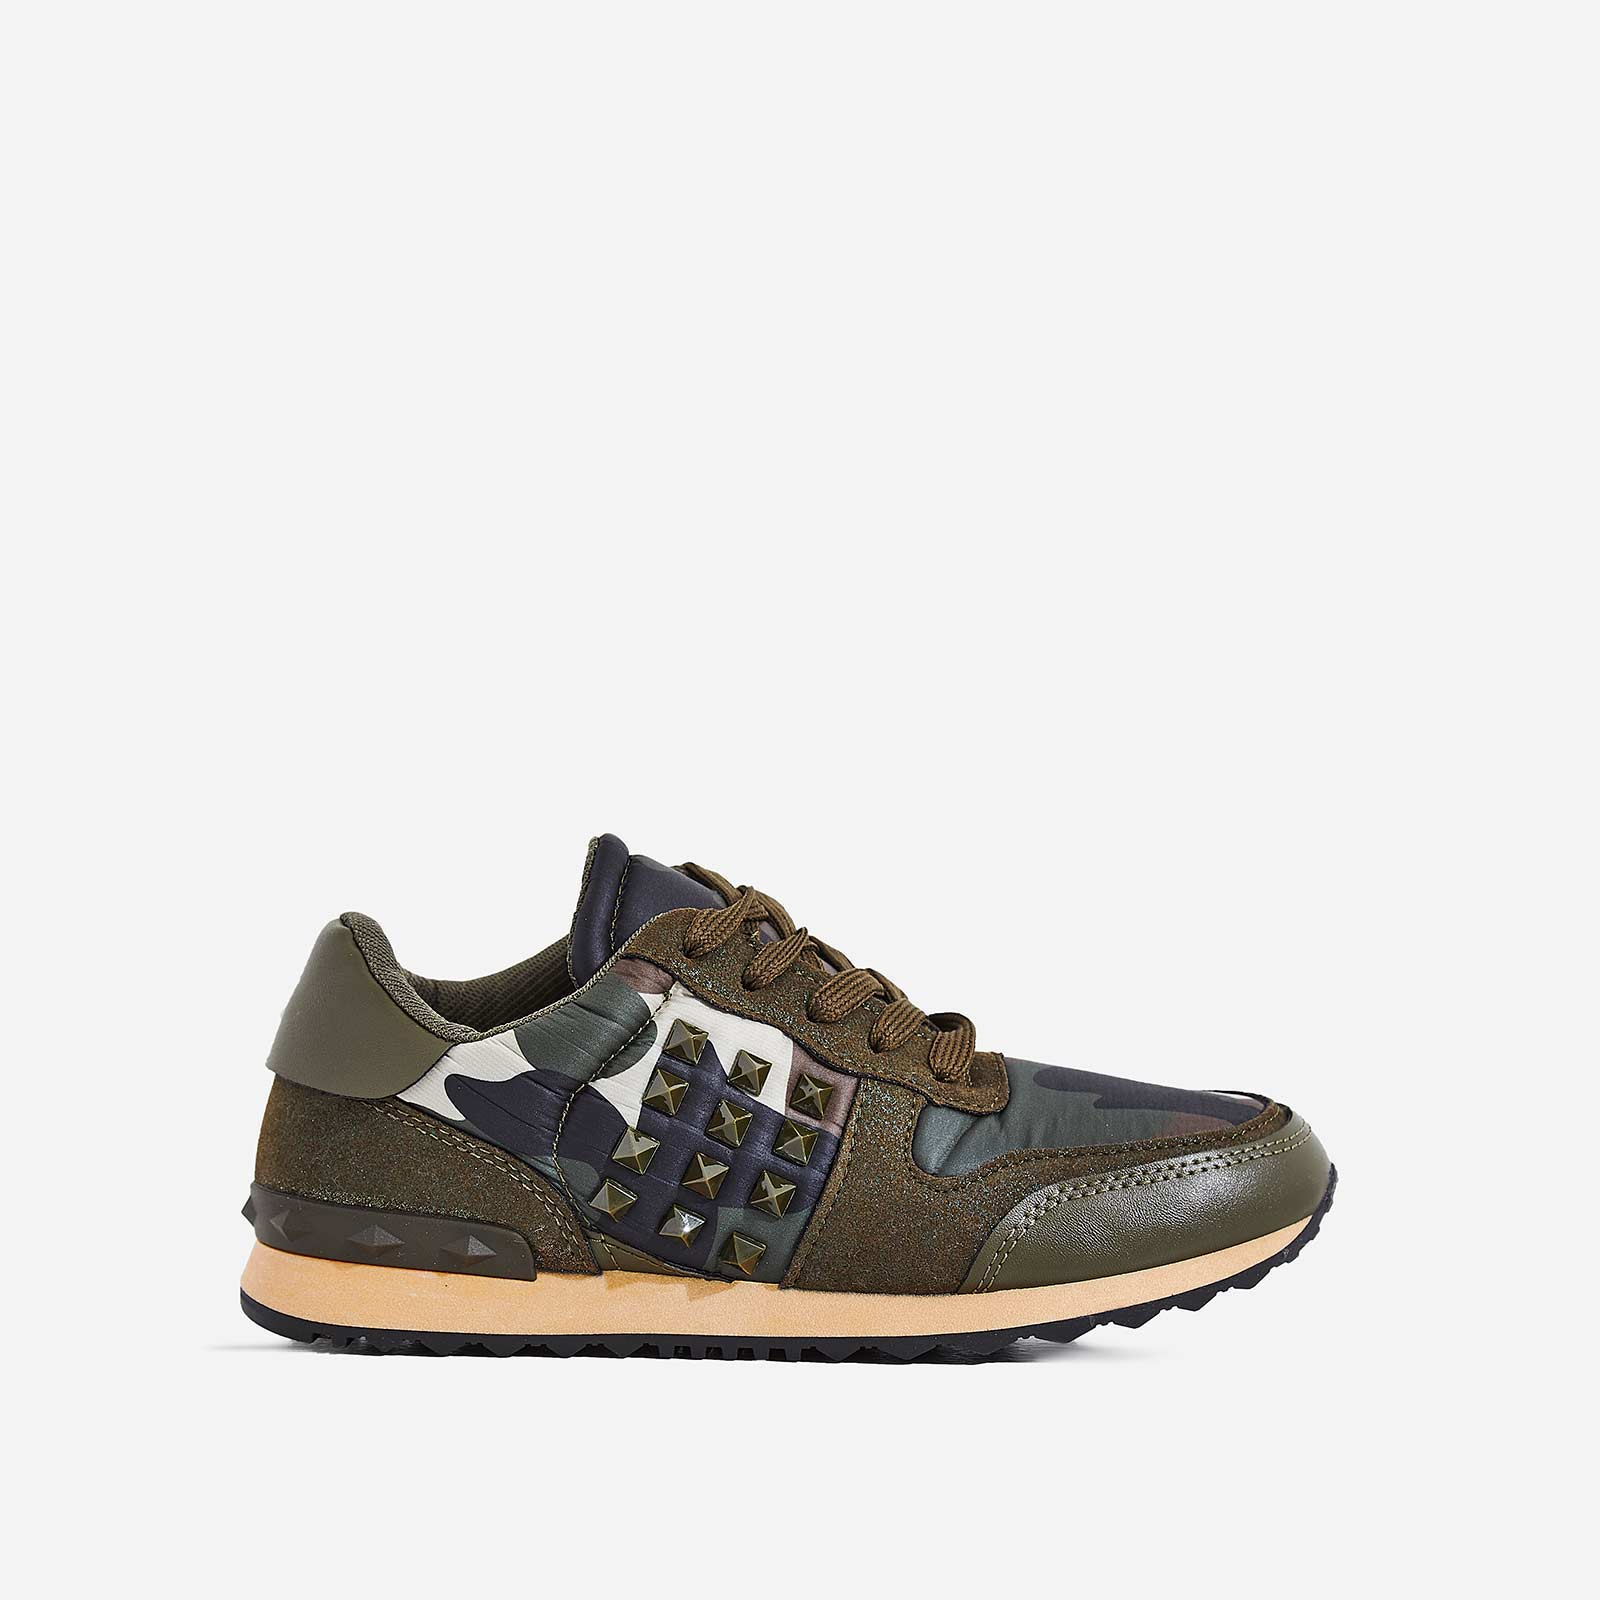 Camillo Studded Detail Trainer In Green Camouflage